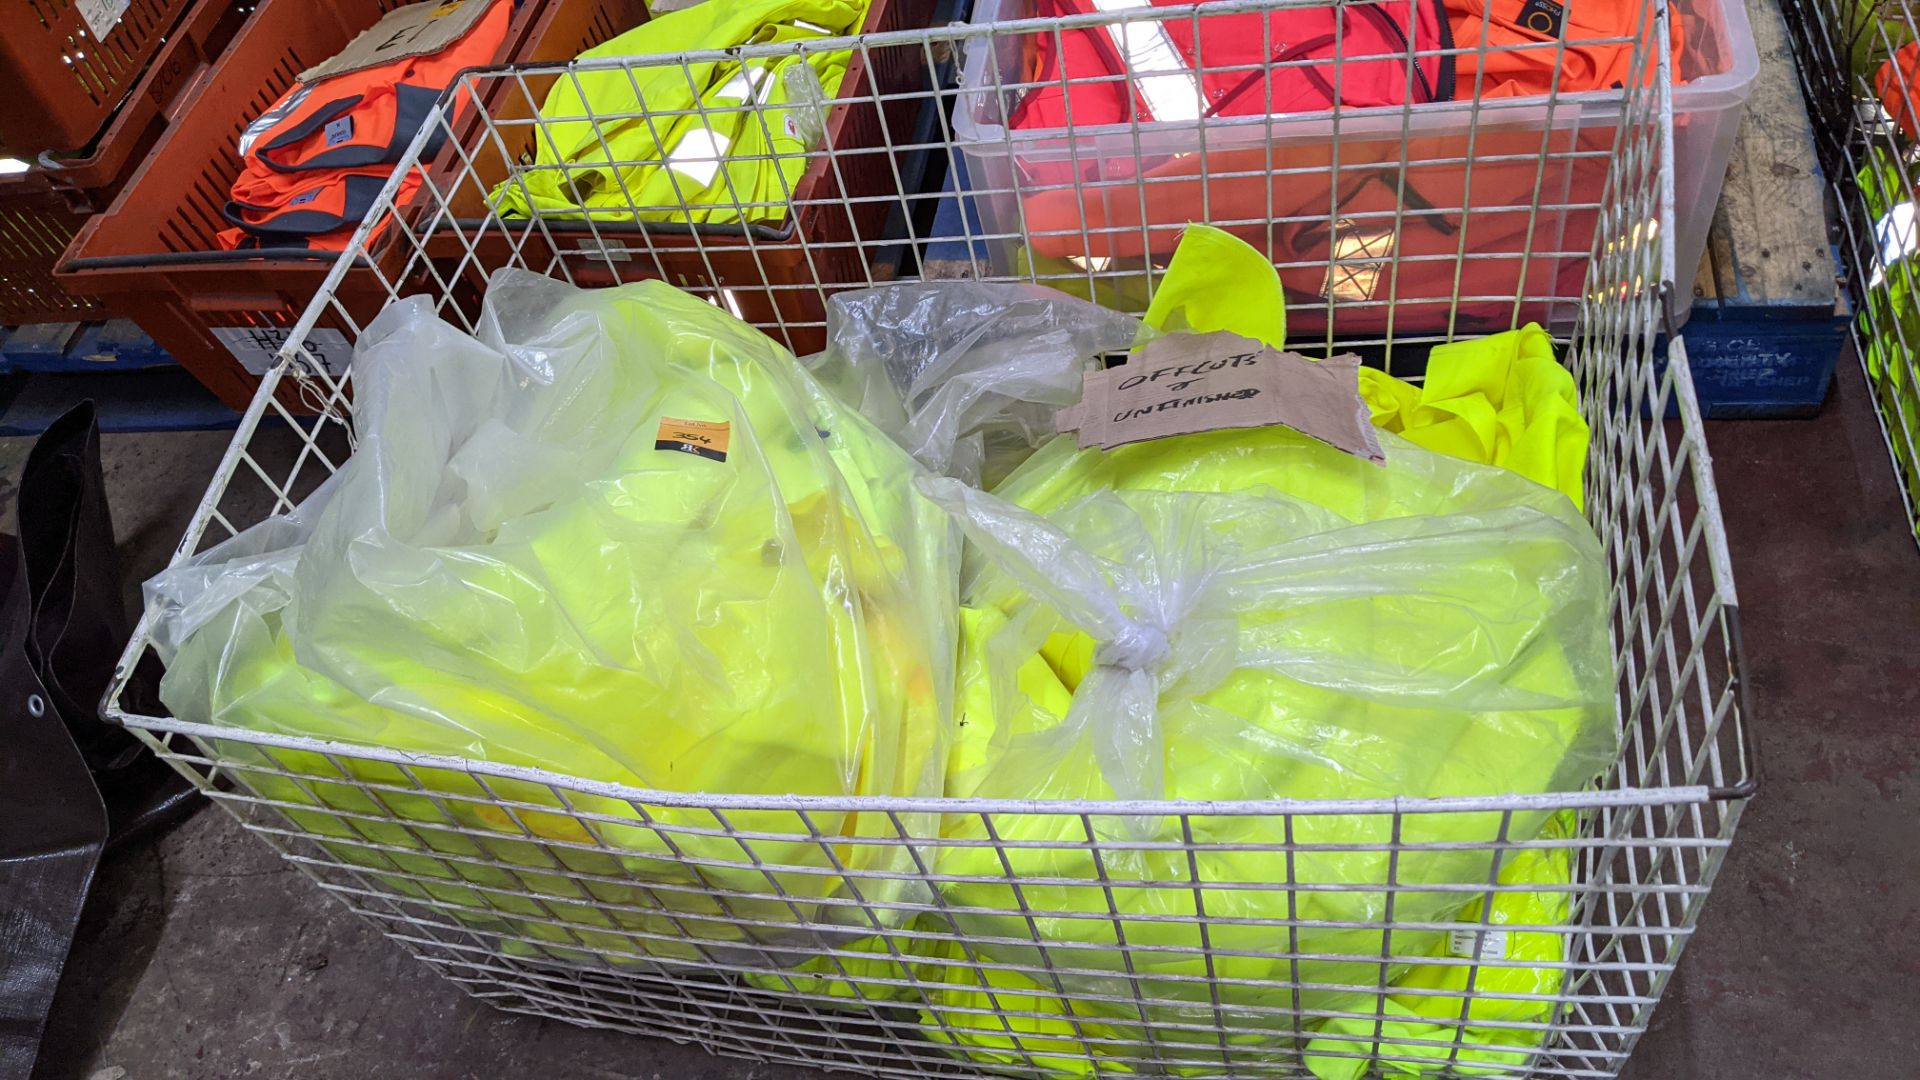 The contents of a cage of off-cuts & unfinished garments, all in yellow hi-vis fabrics. NB cage exc - Image 2 of 4